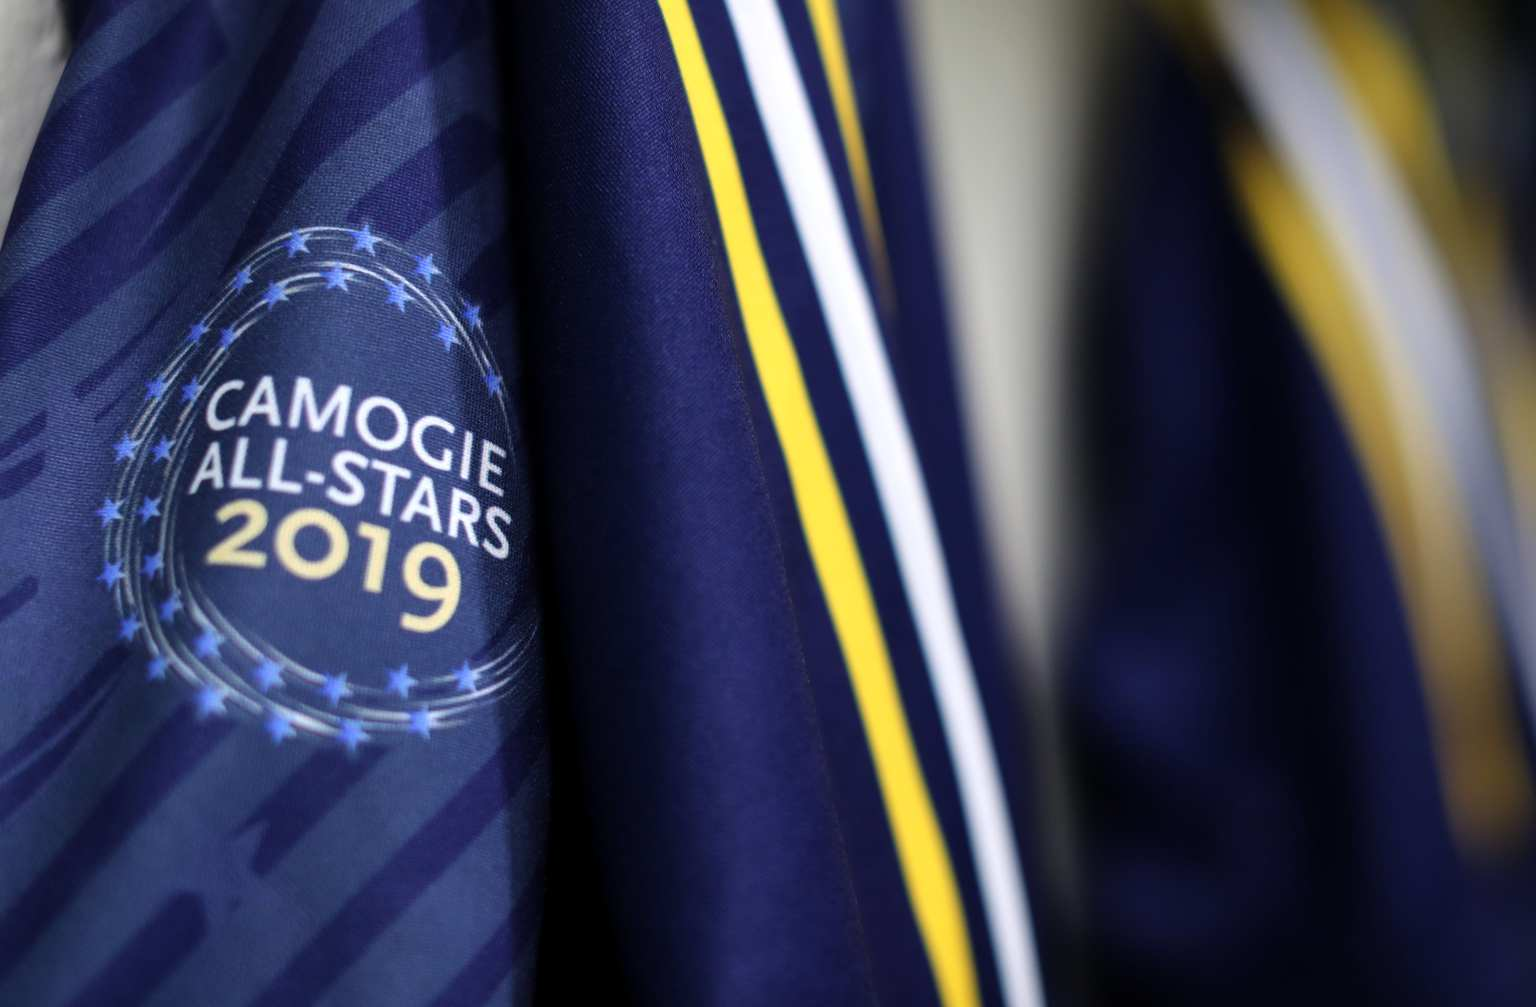 The Jersey that was used by one of the teams in the exhibition game in New York as part of the 2019 Camogie All Stars Tour to the Big Apple